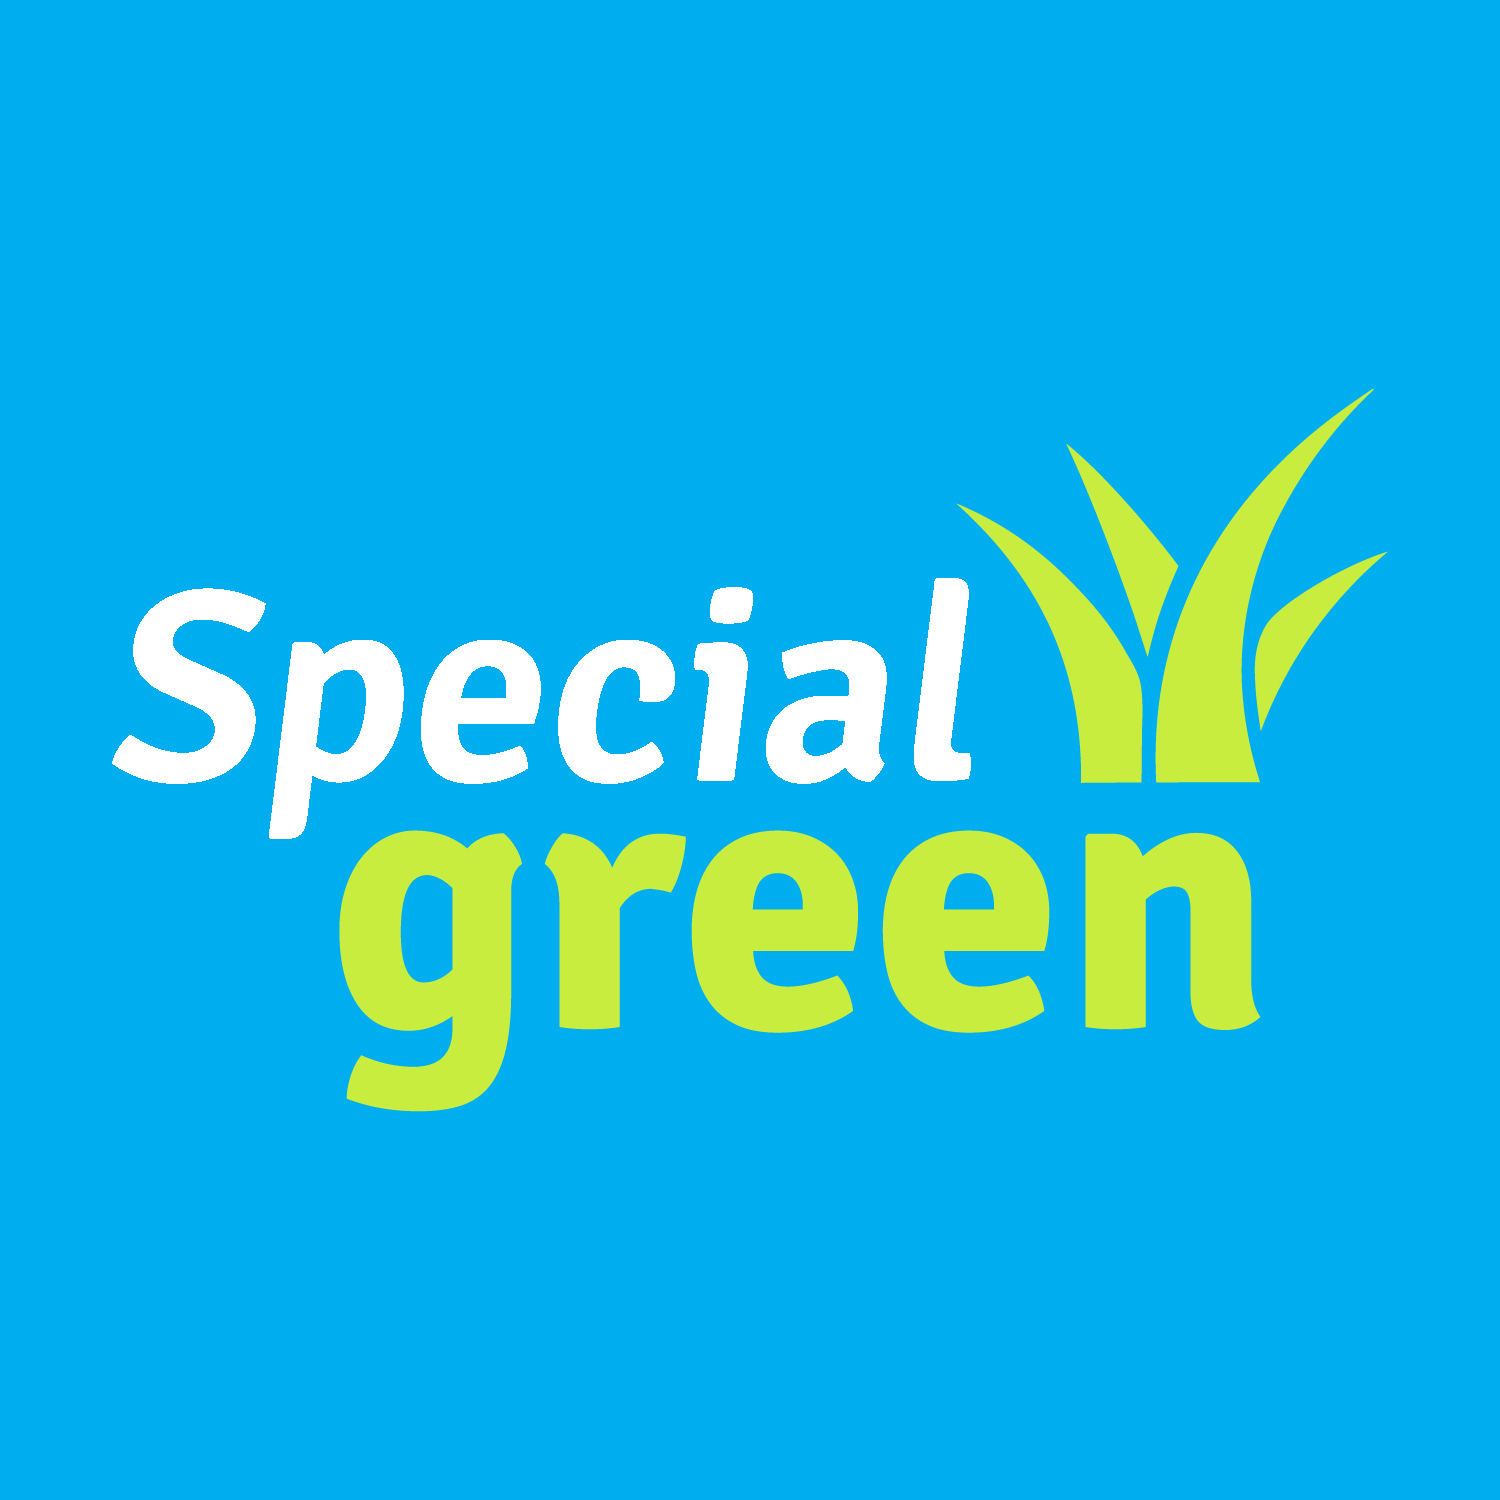 Special Green